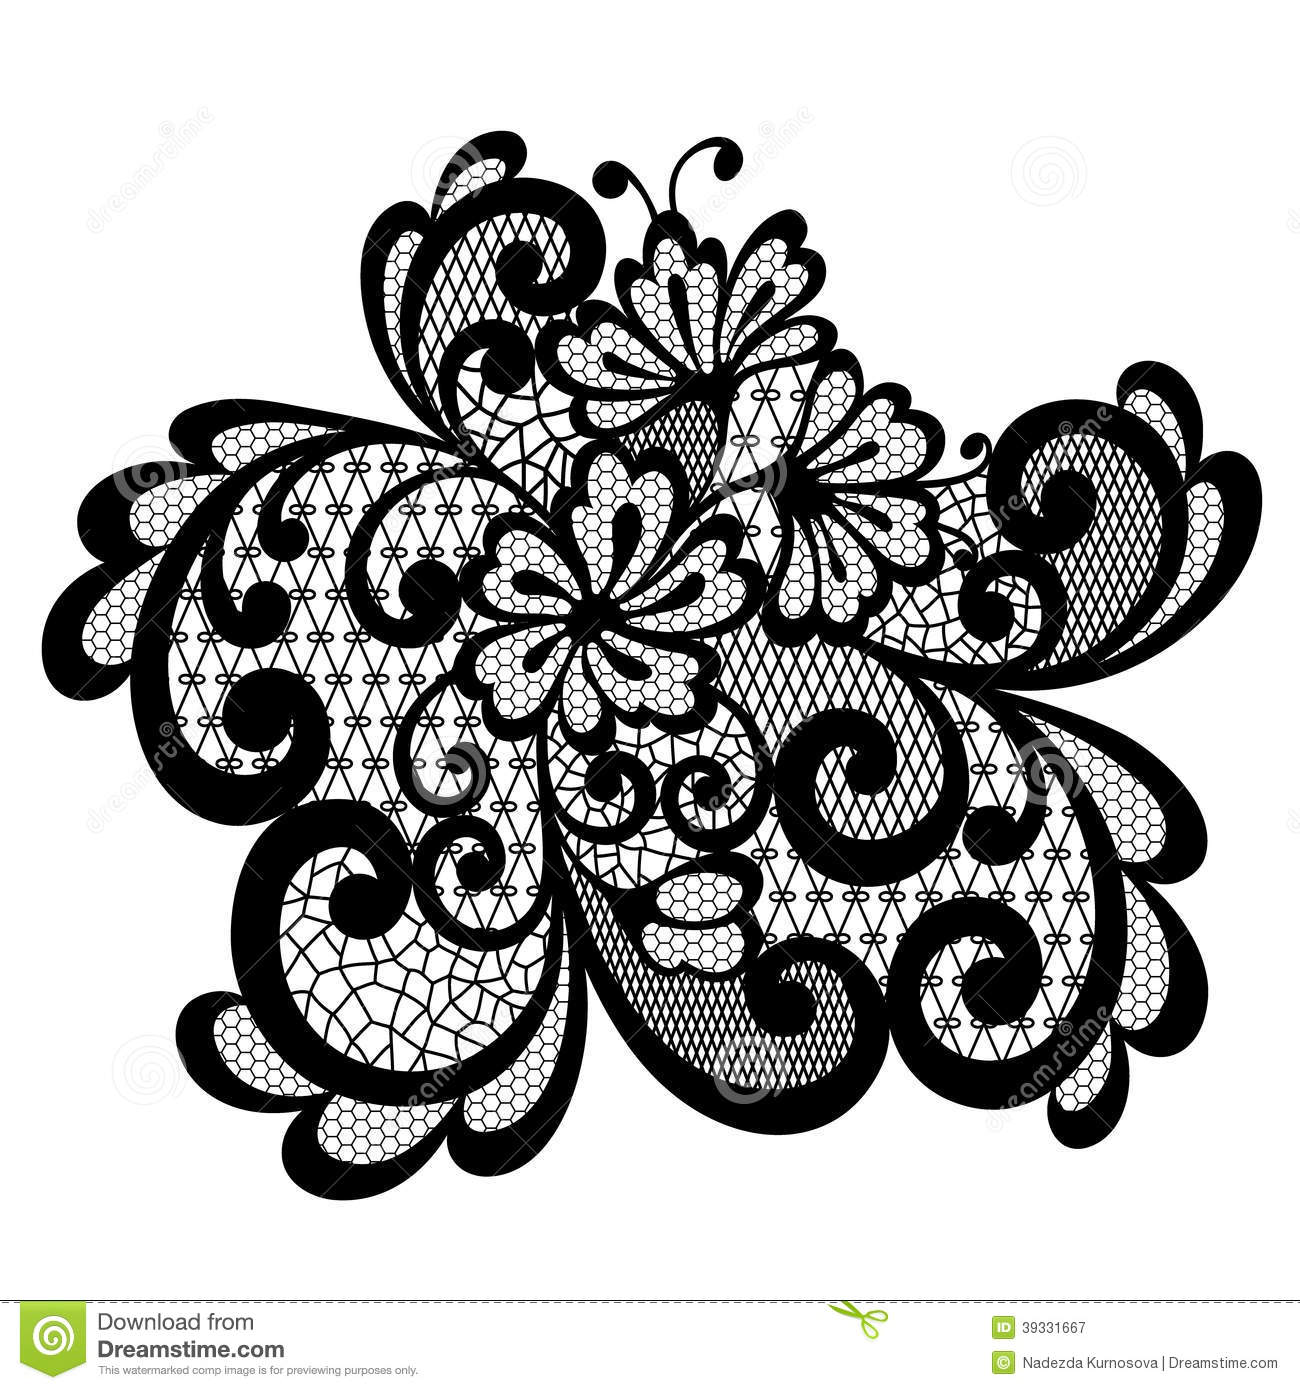 Black vector lace ornament stock vector. Image of abstract